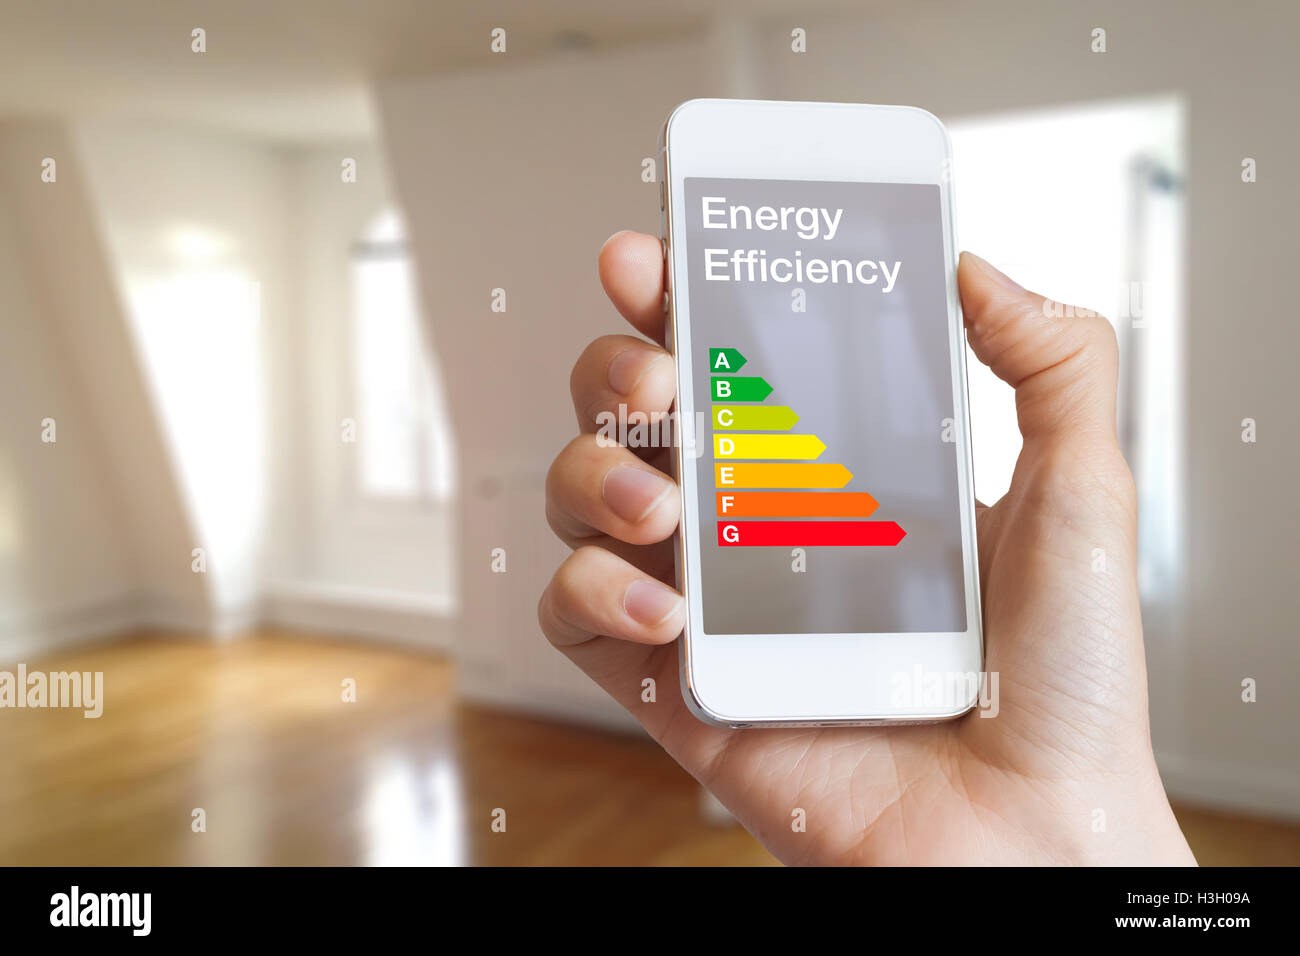 Energy efficiency rating on smartphone app by woman real estate agent and home interior in background - Stock Image